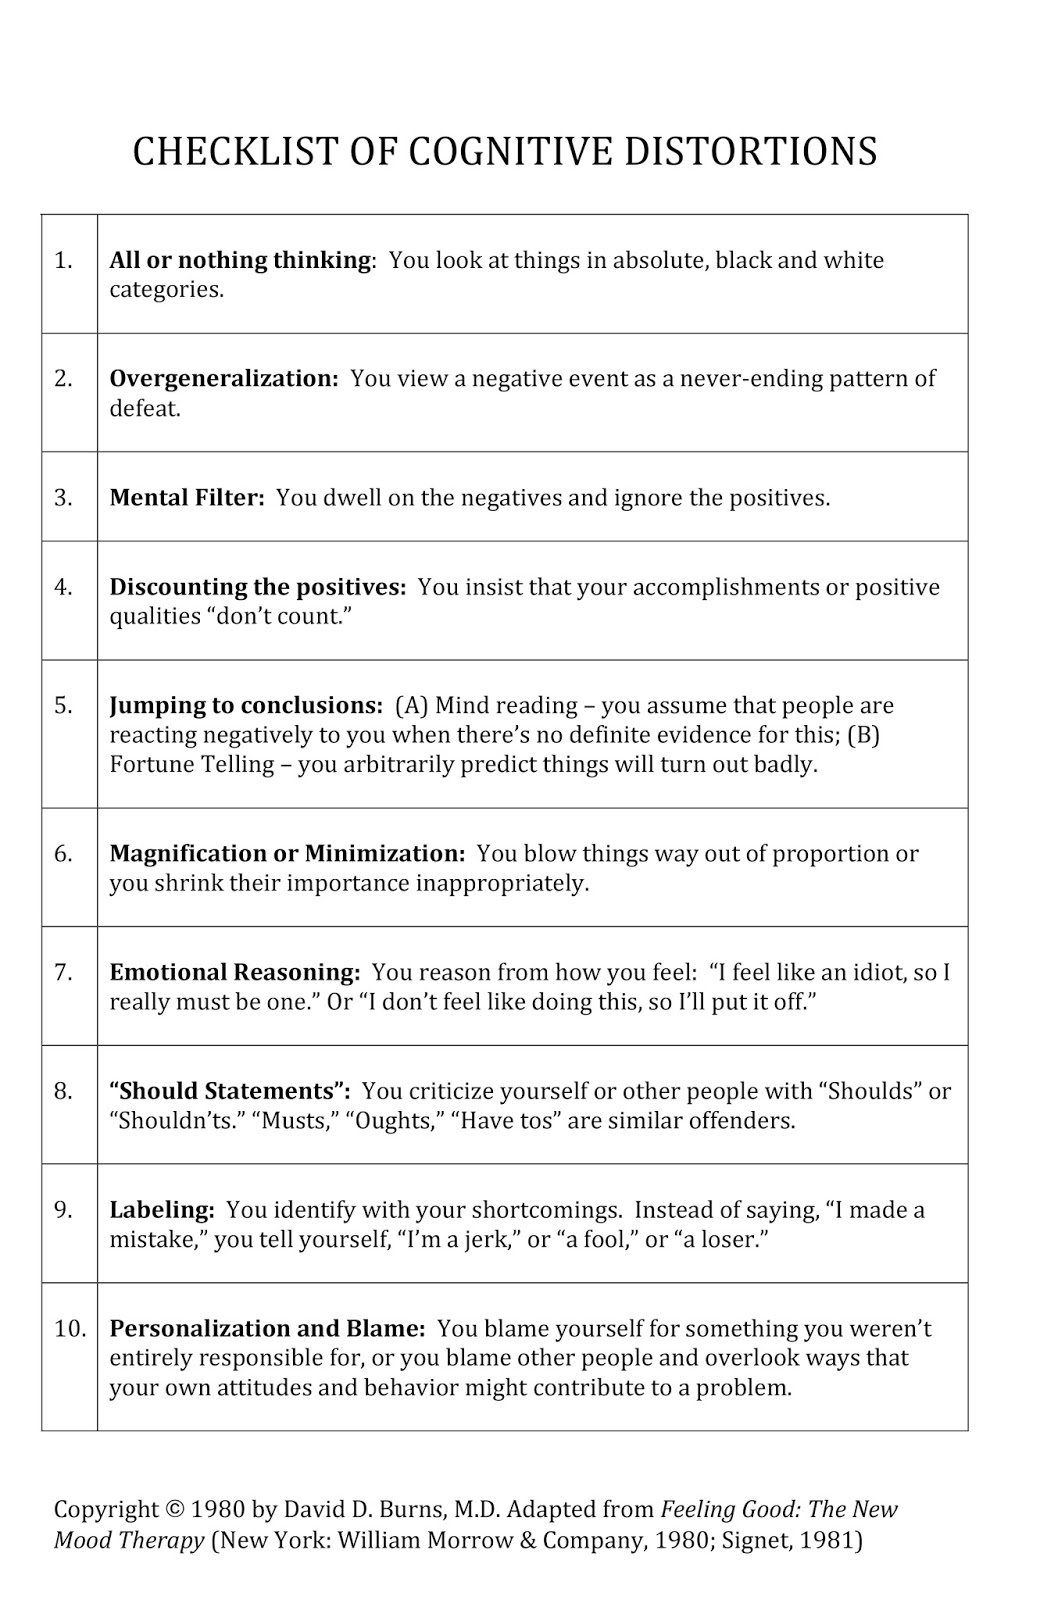 Communication on this topic: 10 Cognitive Distortions, 10-cognitive-distortions/